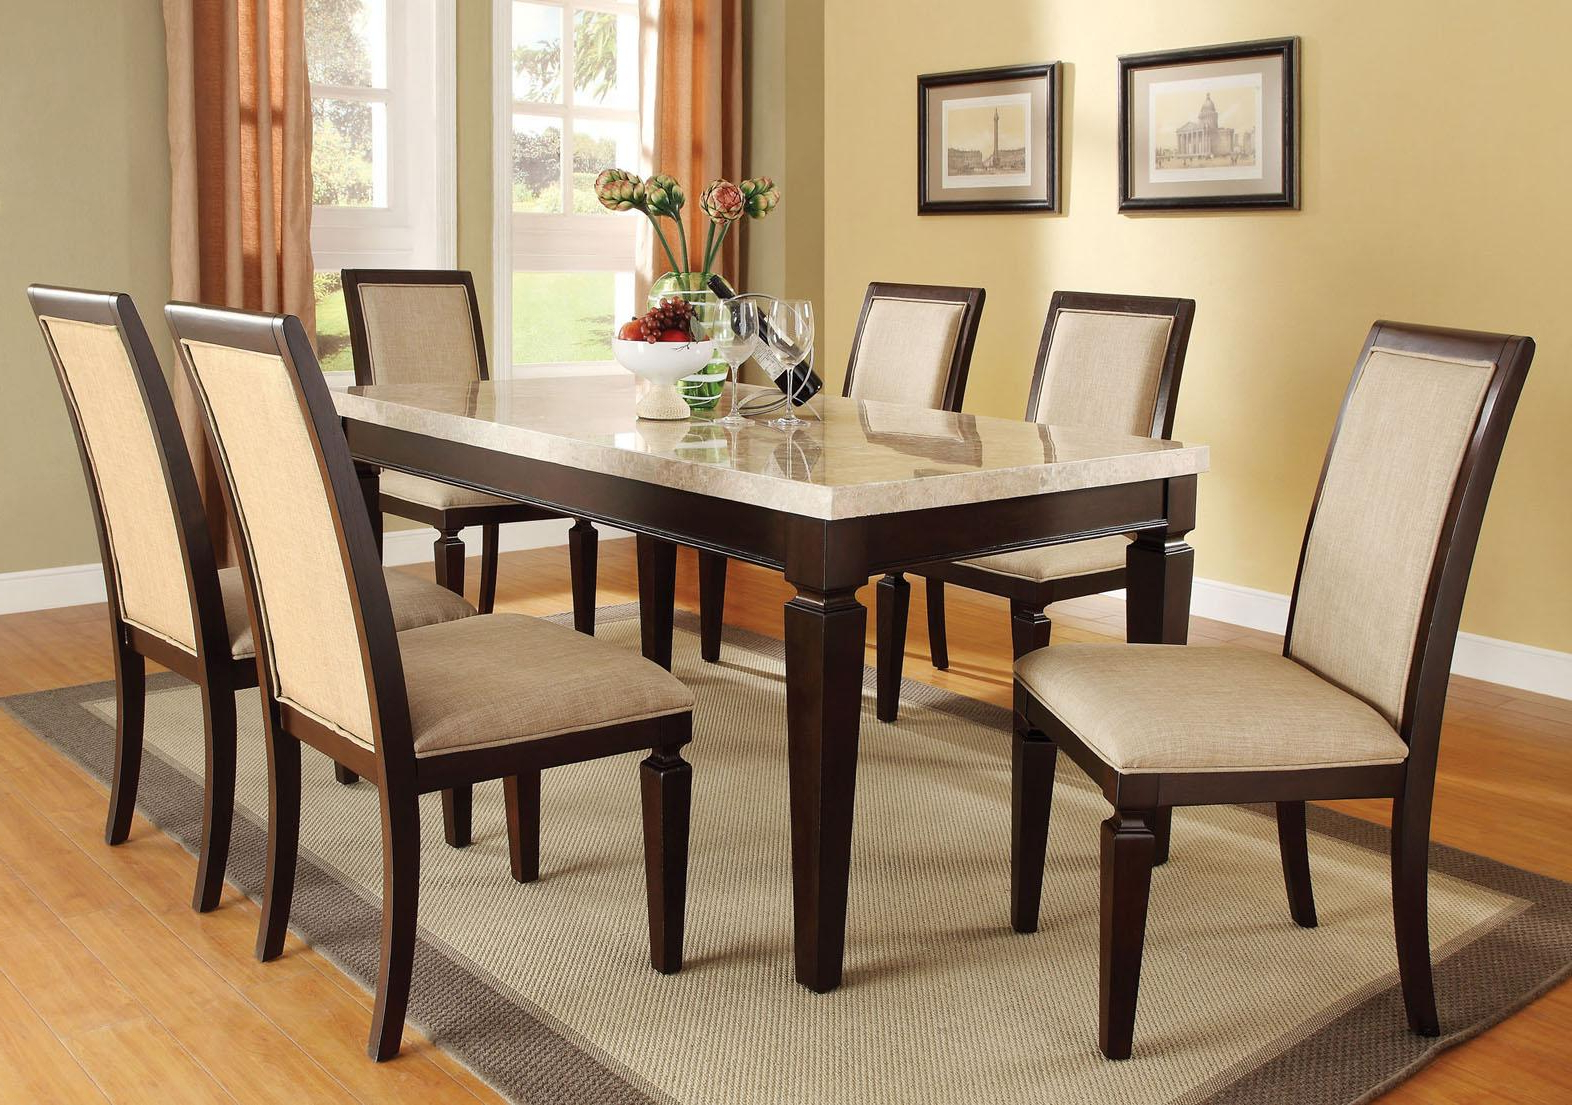 Acme Agatha 7Pc White Marble Top Rectangular Dining Room Set Throughout Well Liked Espresso Finish Wood Classic Design Dining Tables (View 7 of 17)